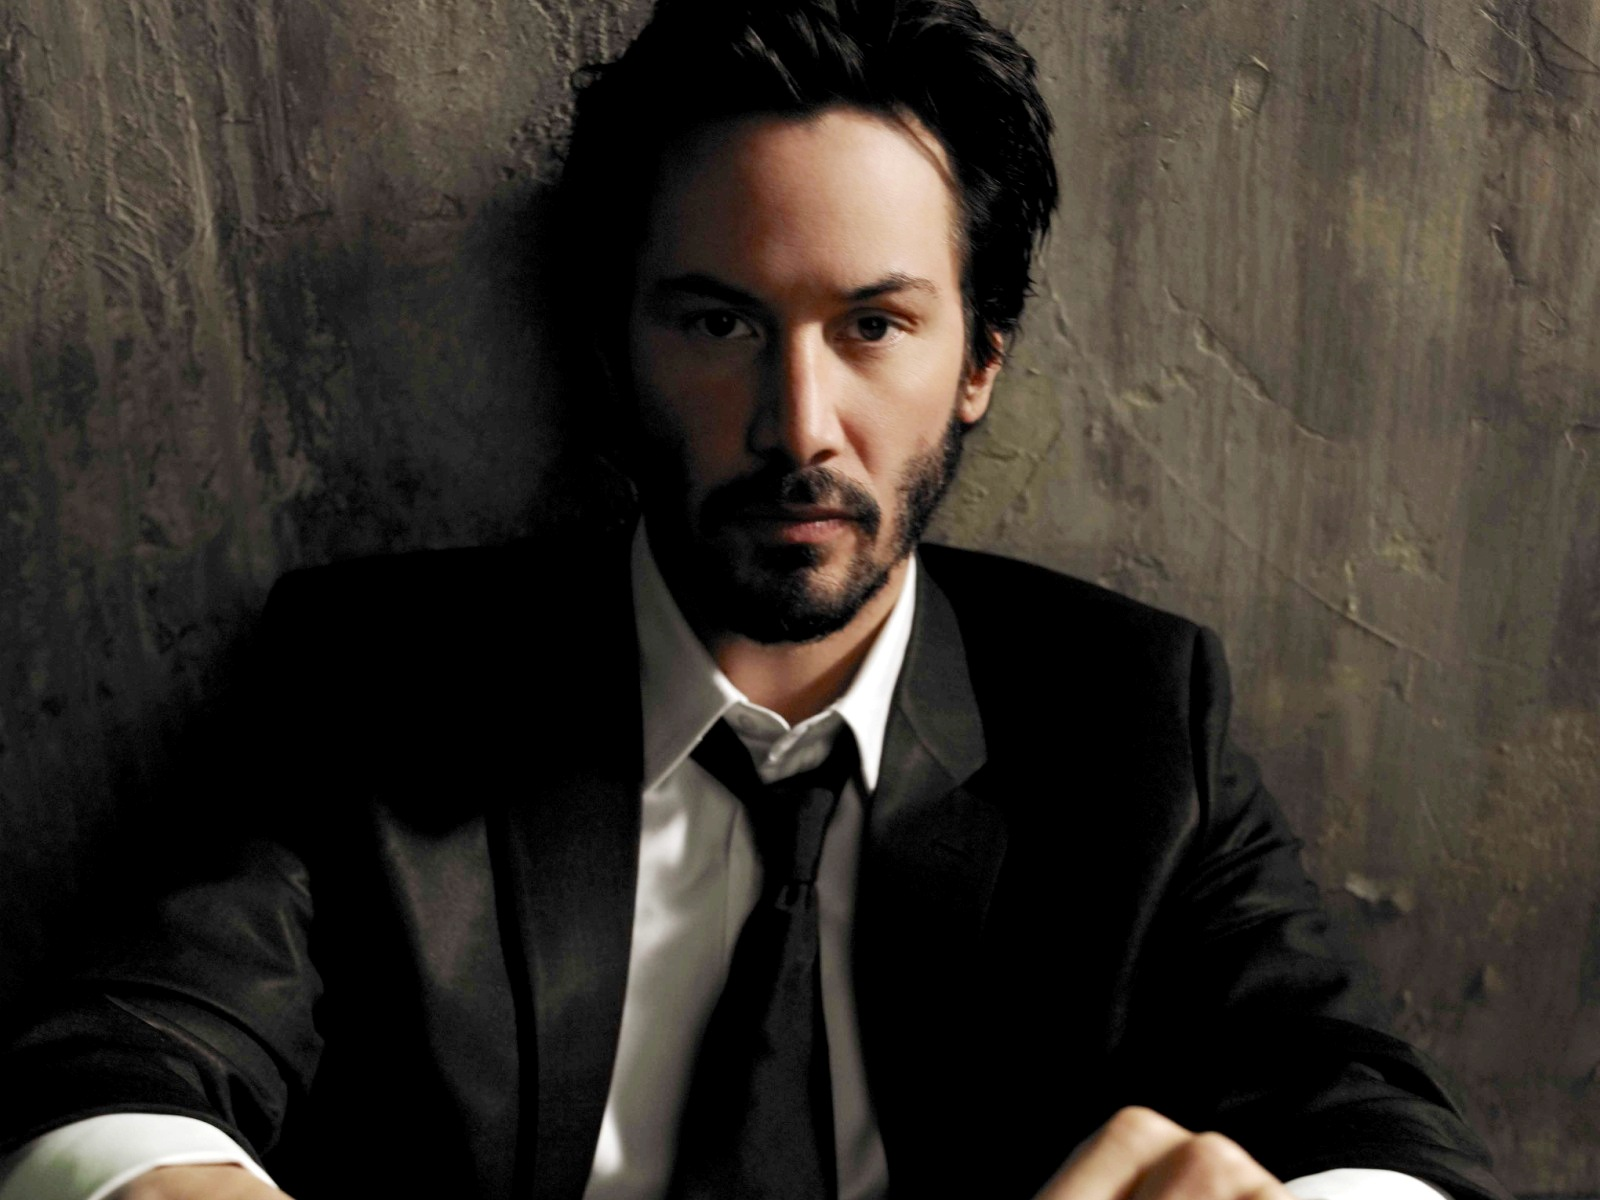 ... Keanu Reeves Wallpaper @ go4celebrity.com ...